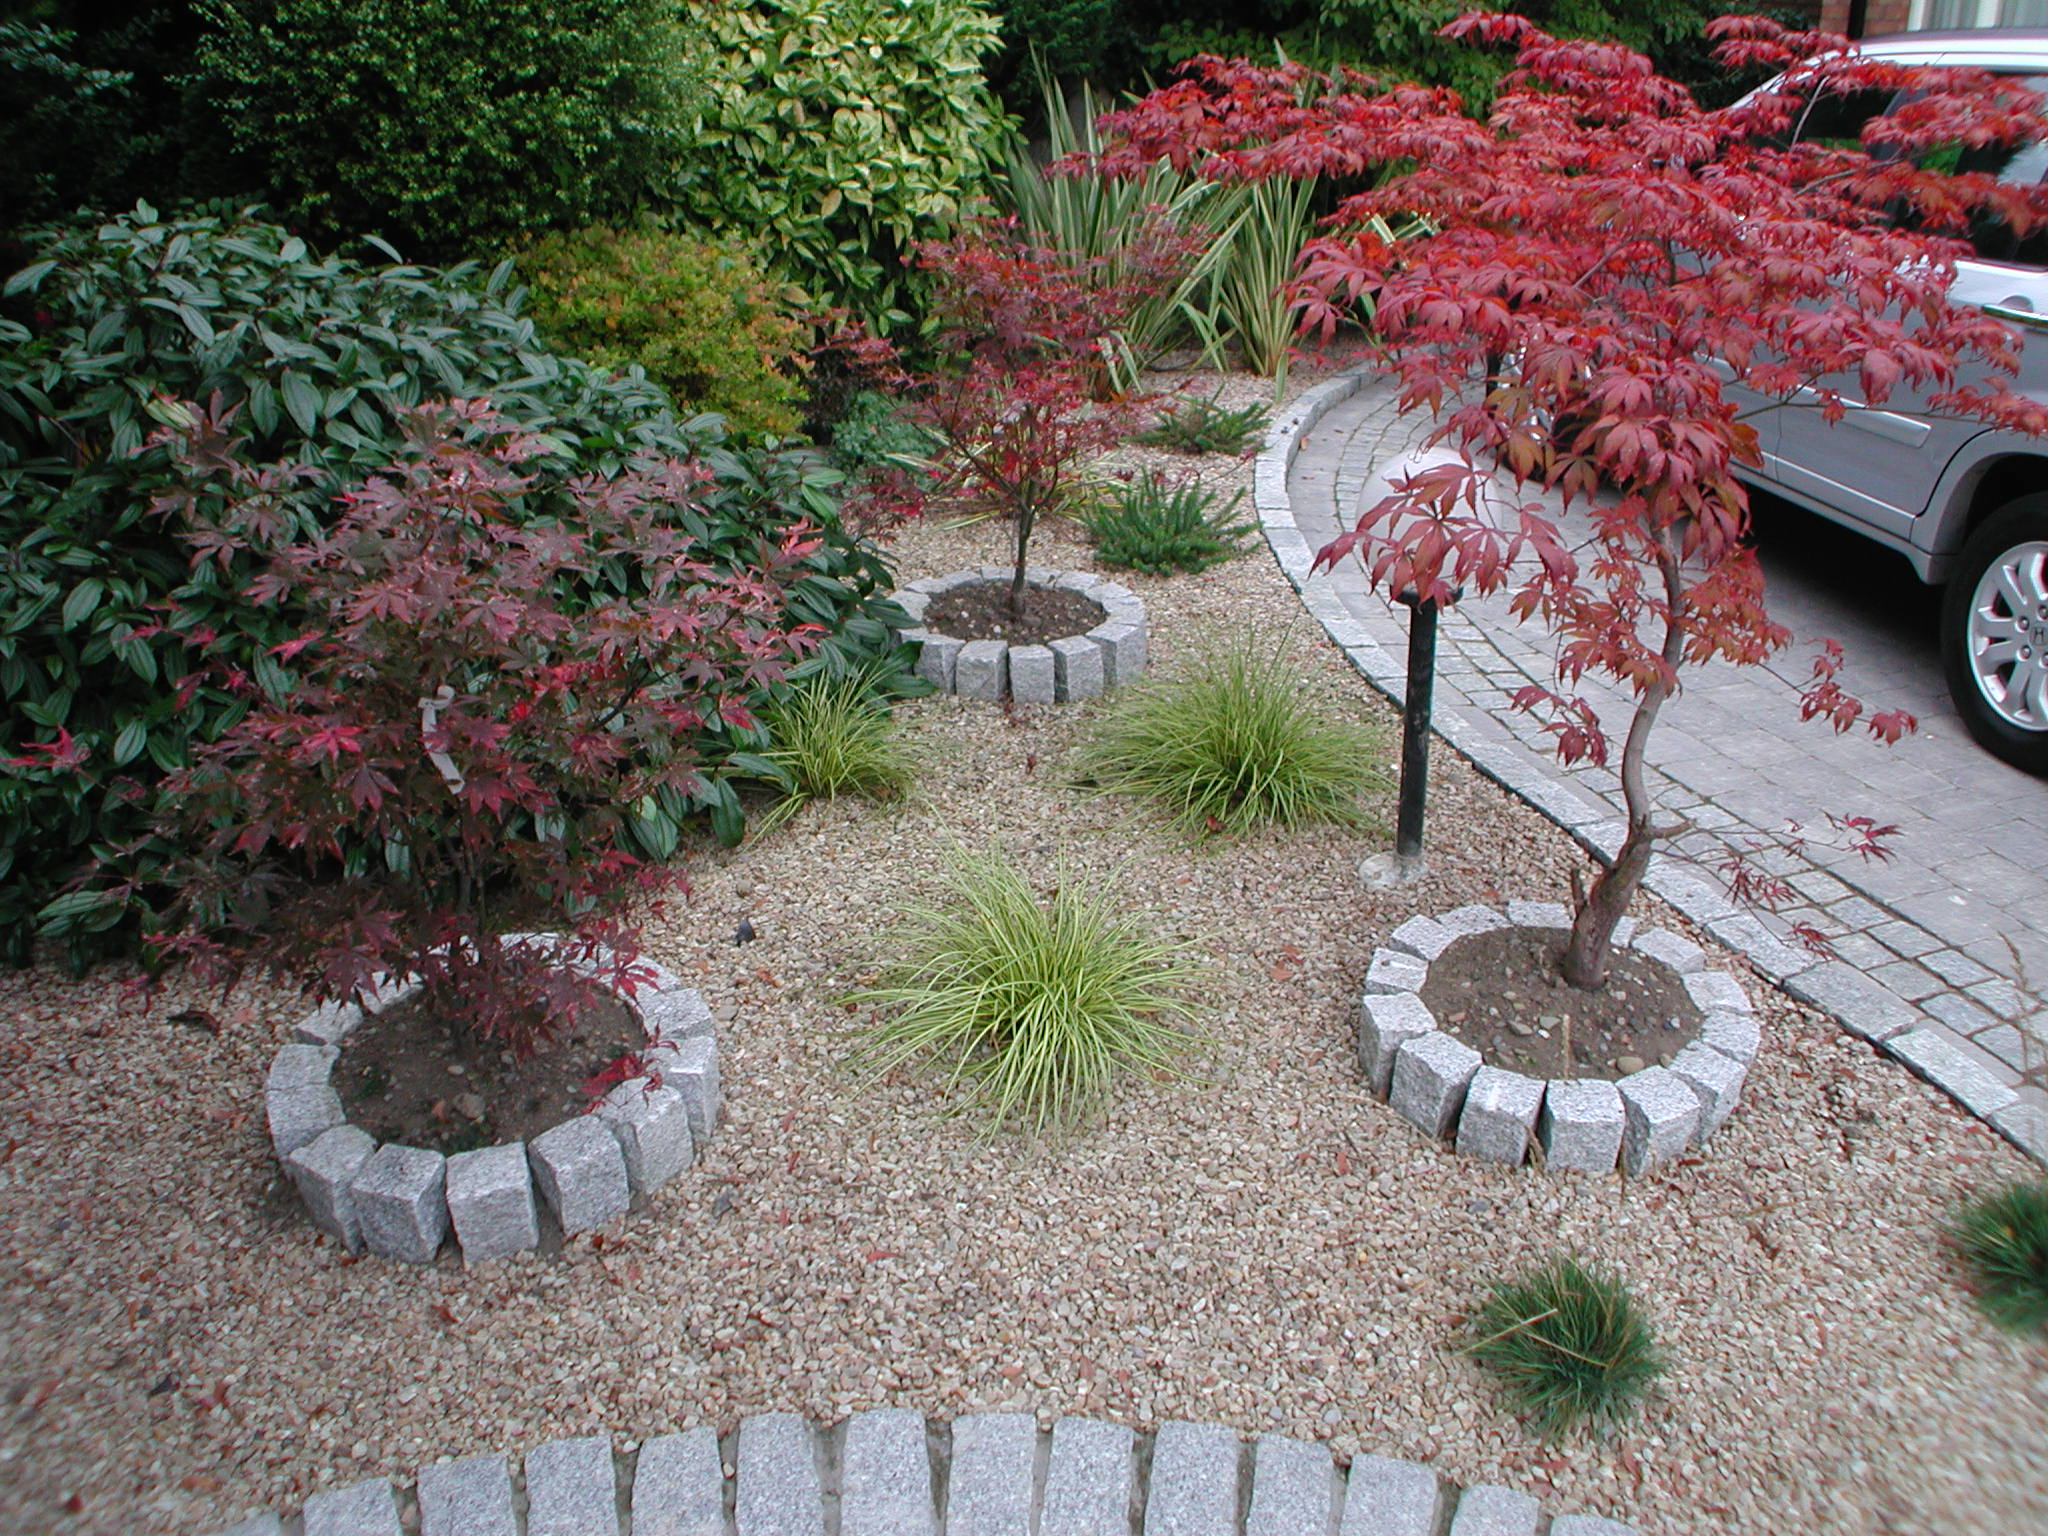 Low Maintenance Garden Design Dublin, Wicklow - Landscaping.ie on no maintenance kitchen design, no maintenance bathroom design, no maintenance backyard design, no maintenance front yard landscape, no maintenance garden design,